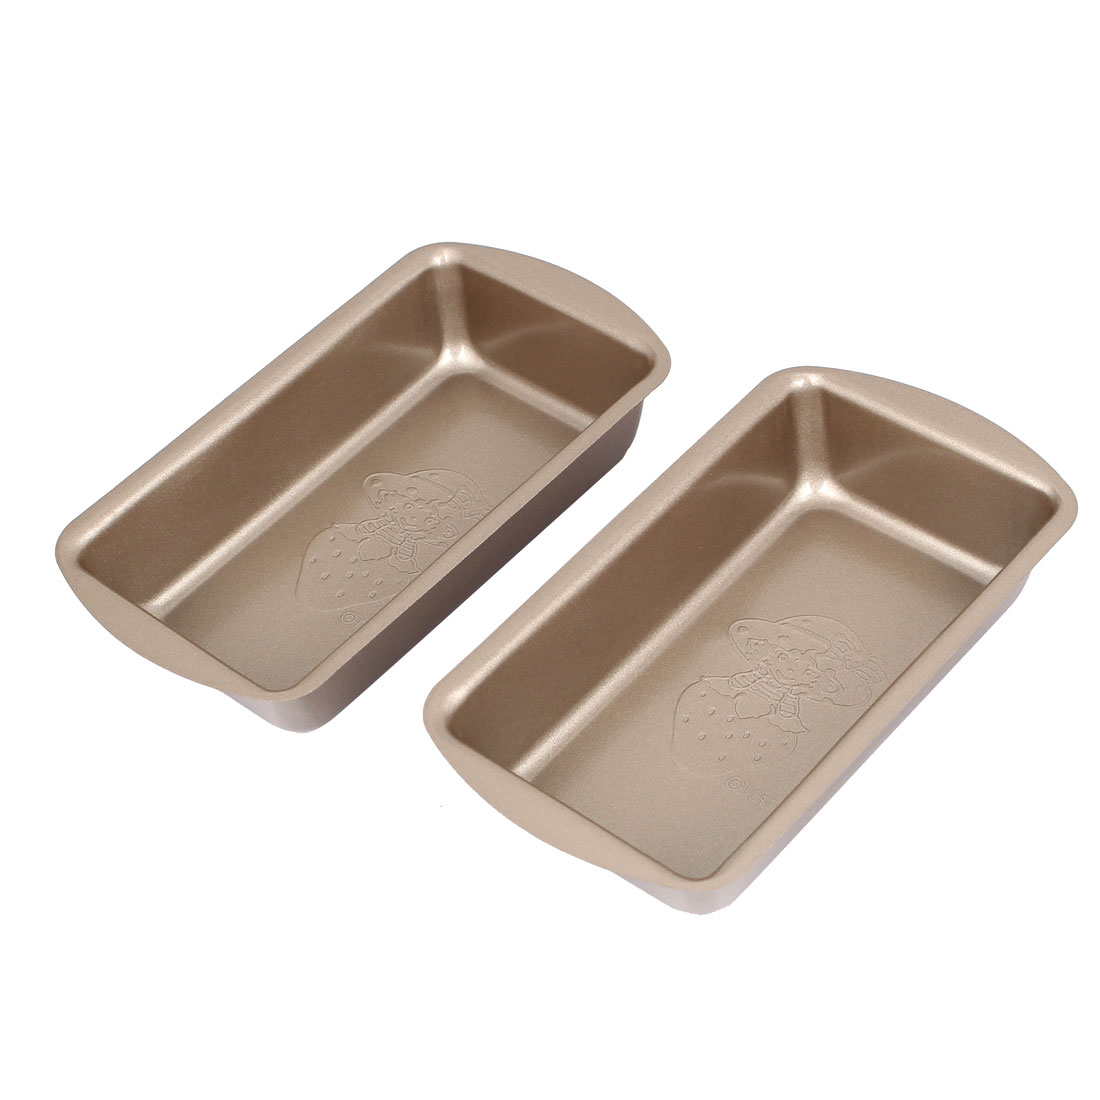 Cake Shop Home Restaurant Toast Bread Baking Mold Mould Bakeware Pan 2pcs